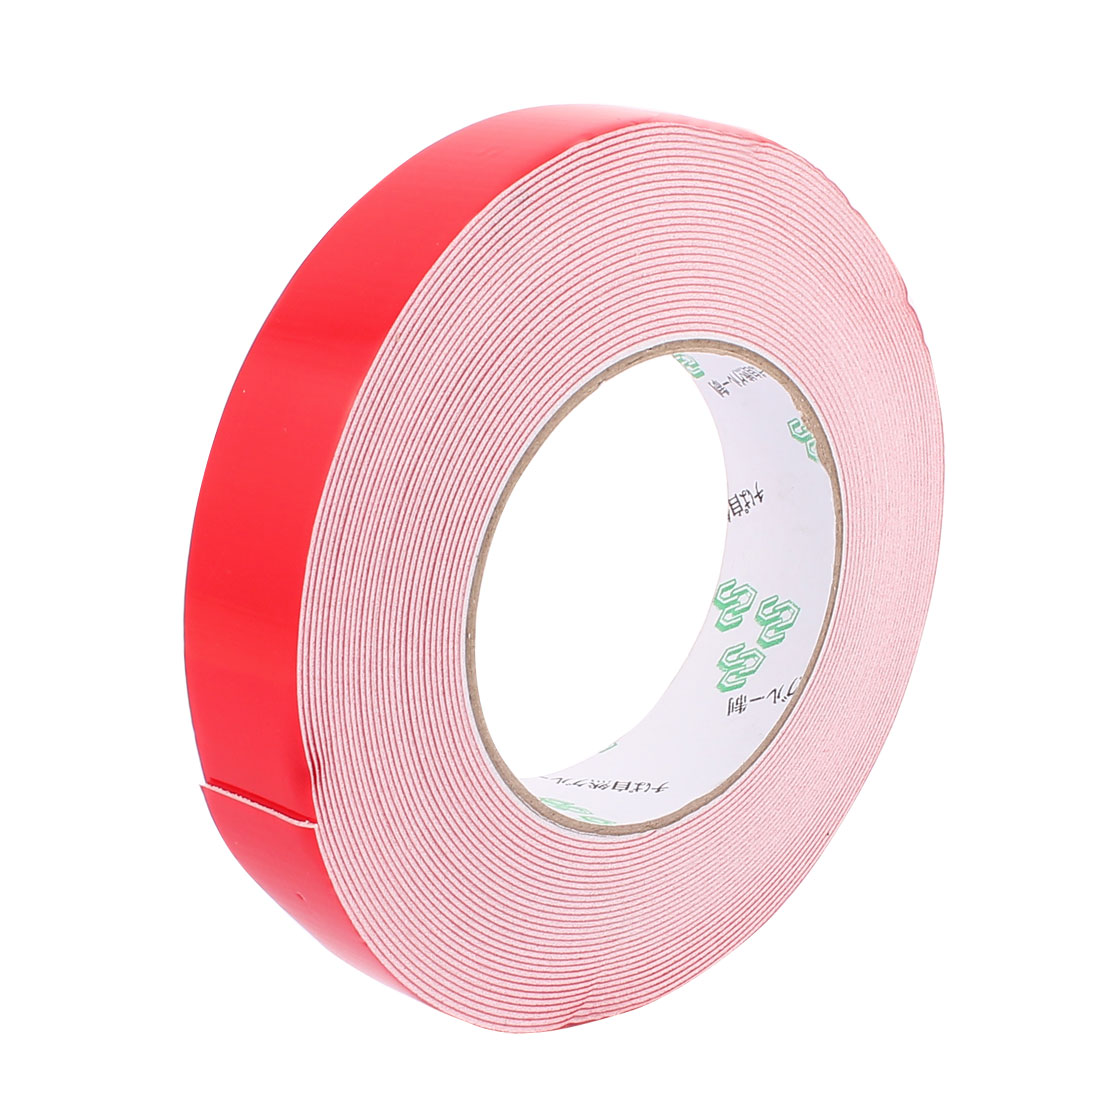 2.5CM Width 10M Length 1MM Thick White Dual Sided Waterproof Sponge Tape for Car